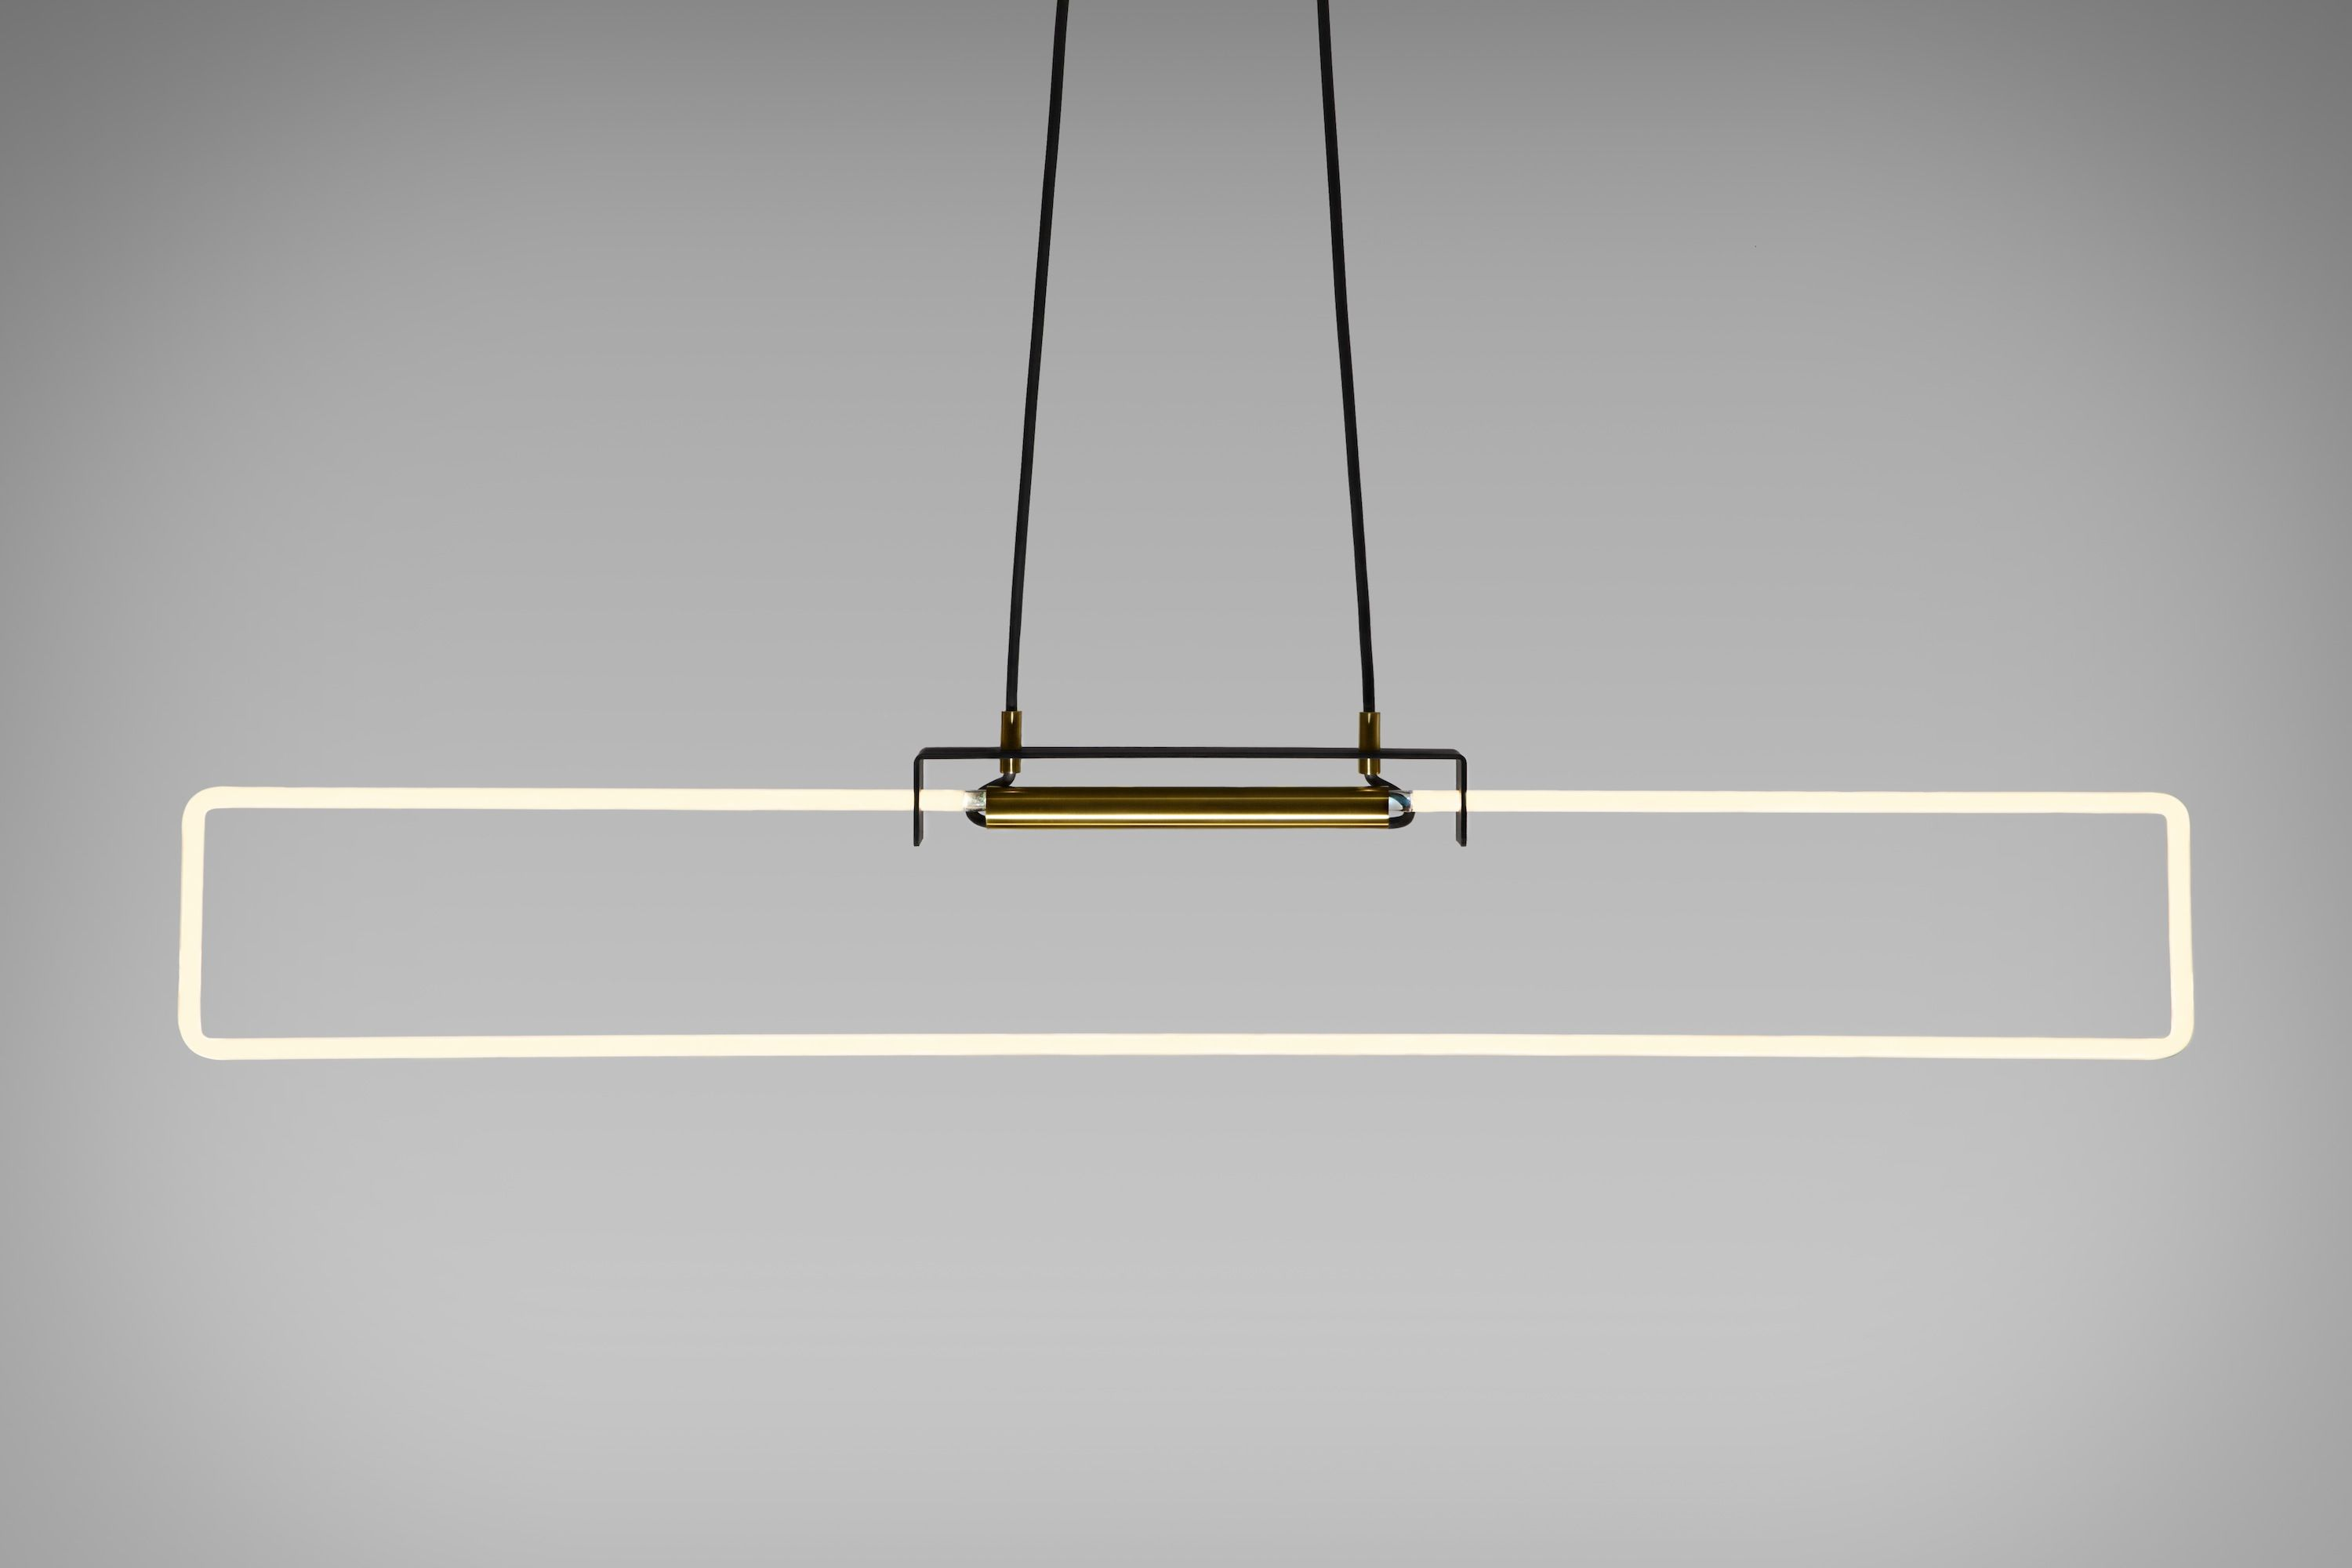 Suspension Design Neon Ra Suspension Neon Dimmable Soft Warm White By D 39armes